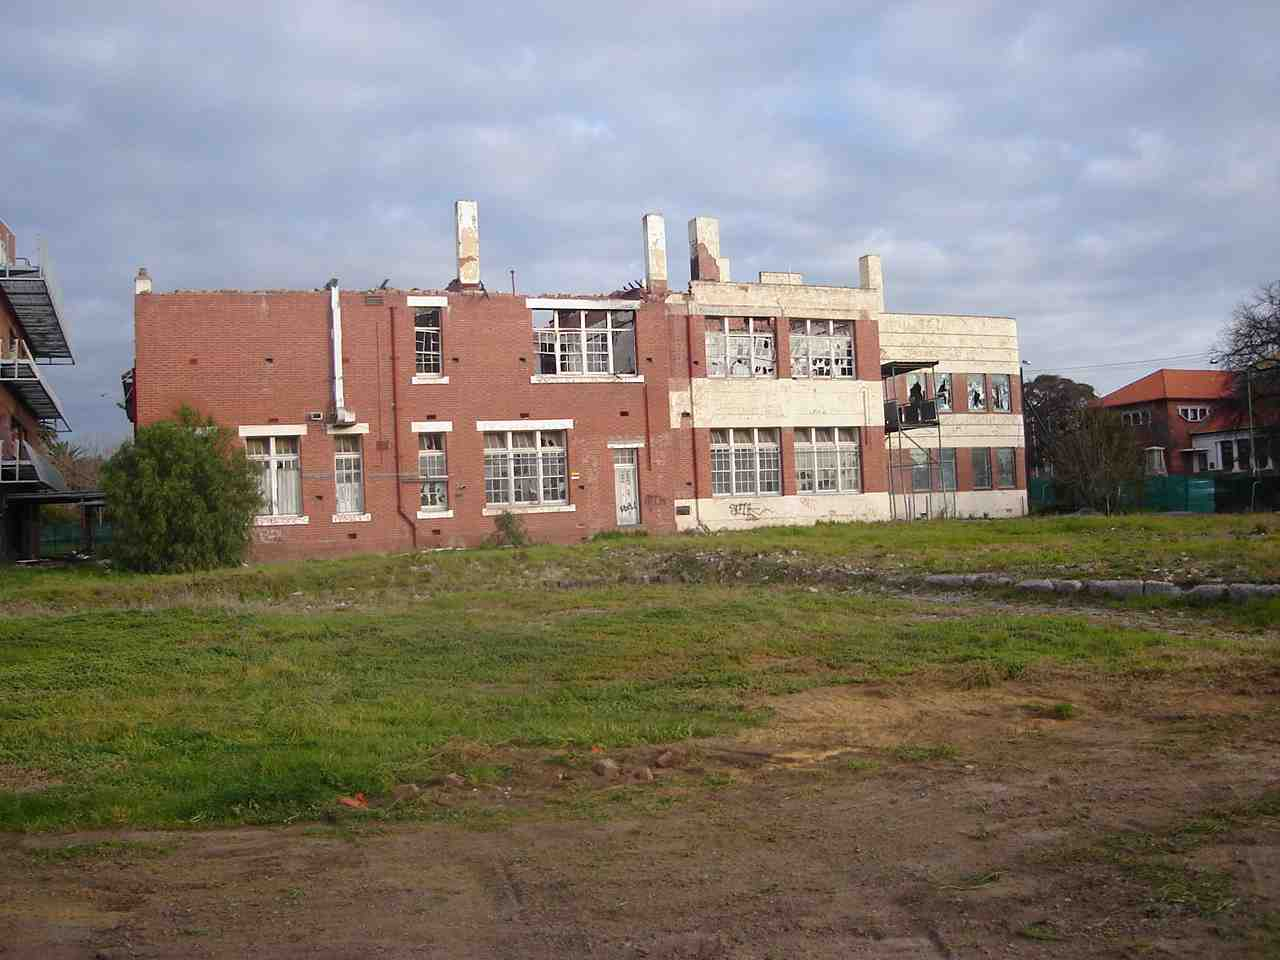 commercial_demolition_CoburgHighSchool_FrontBuilding.jpg